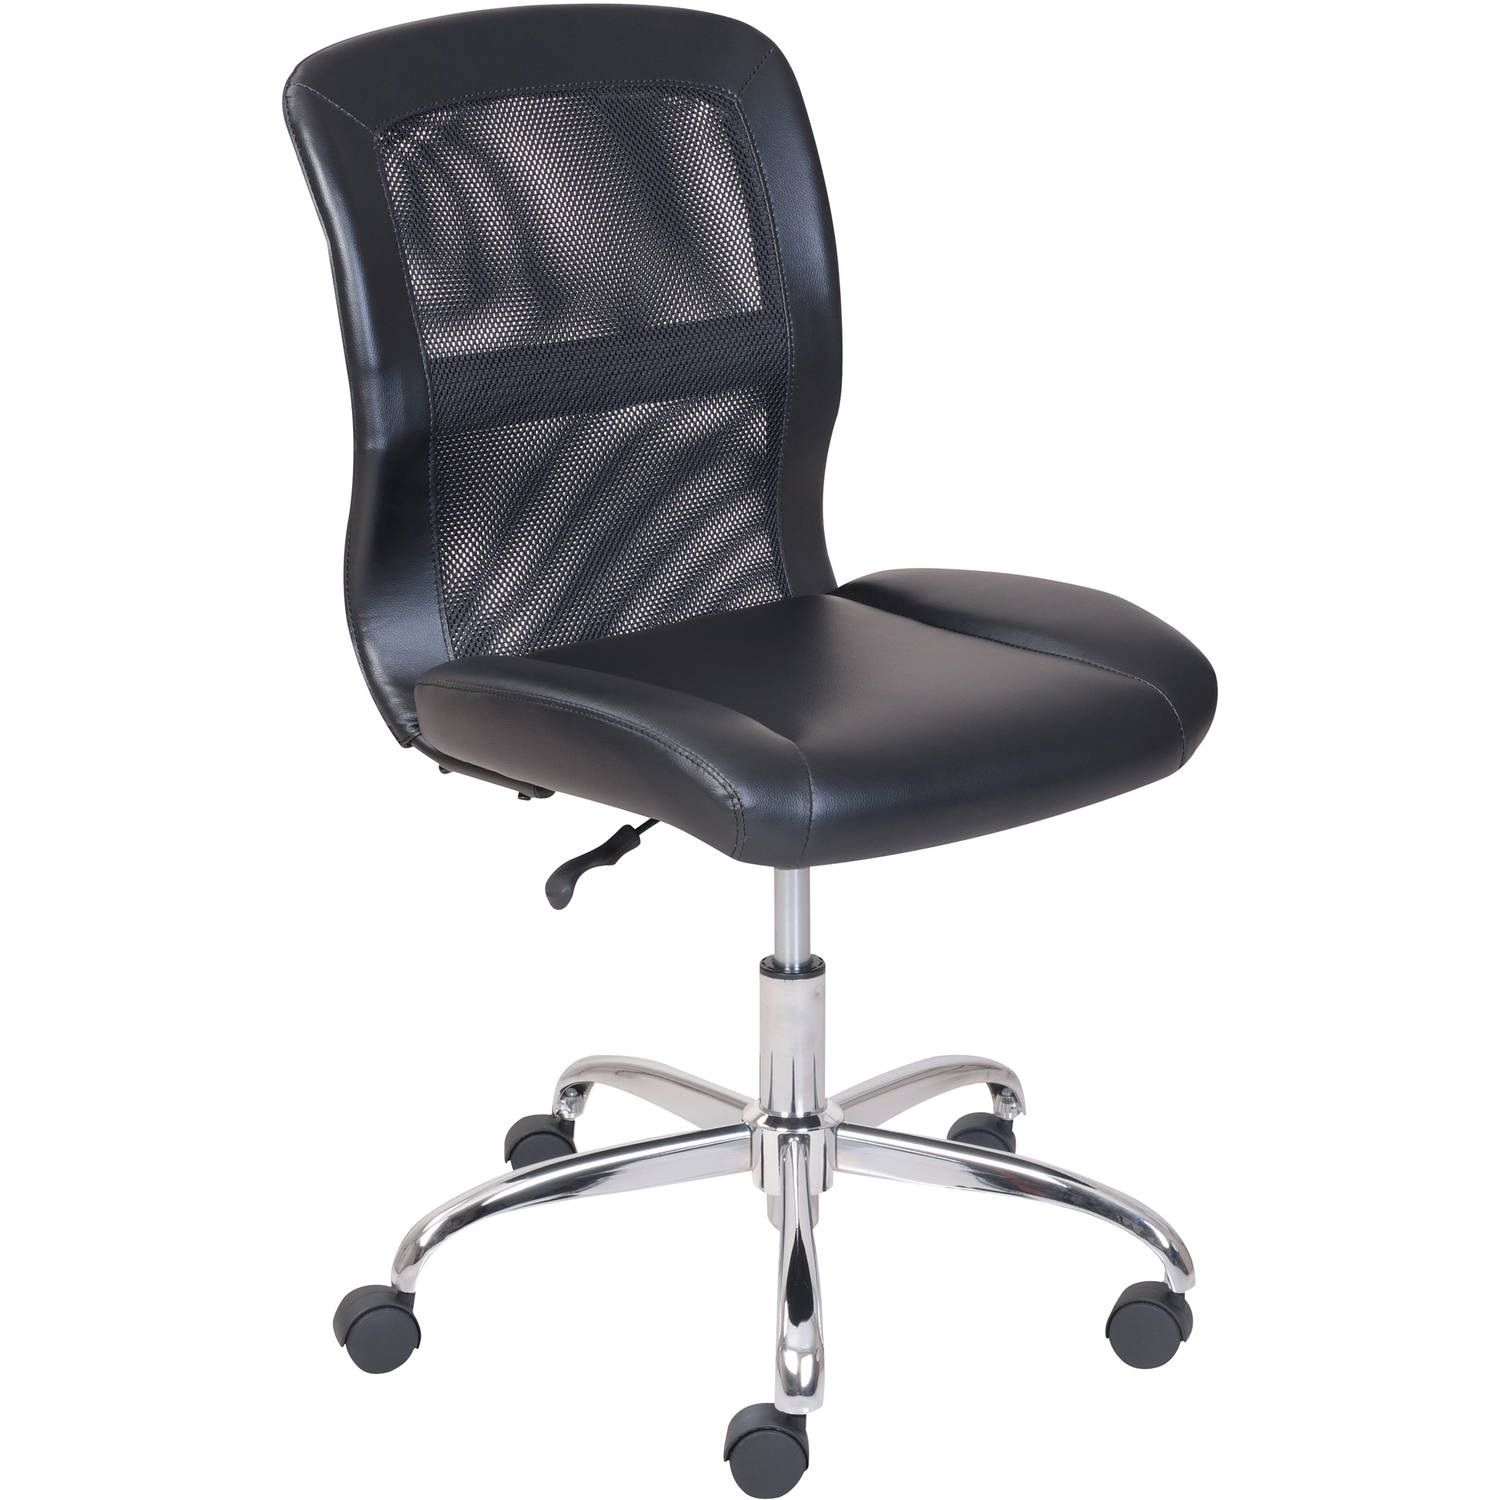 Office Chairs On Sale Walmart - Executive Home Office Furniture ...